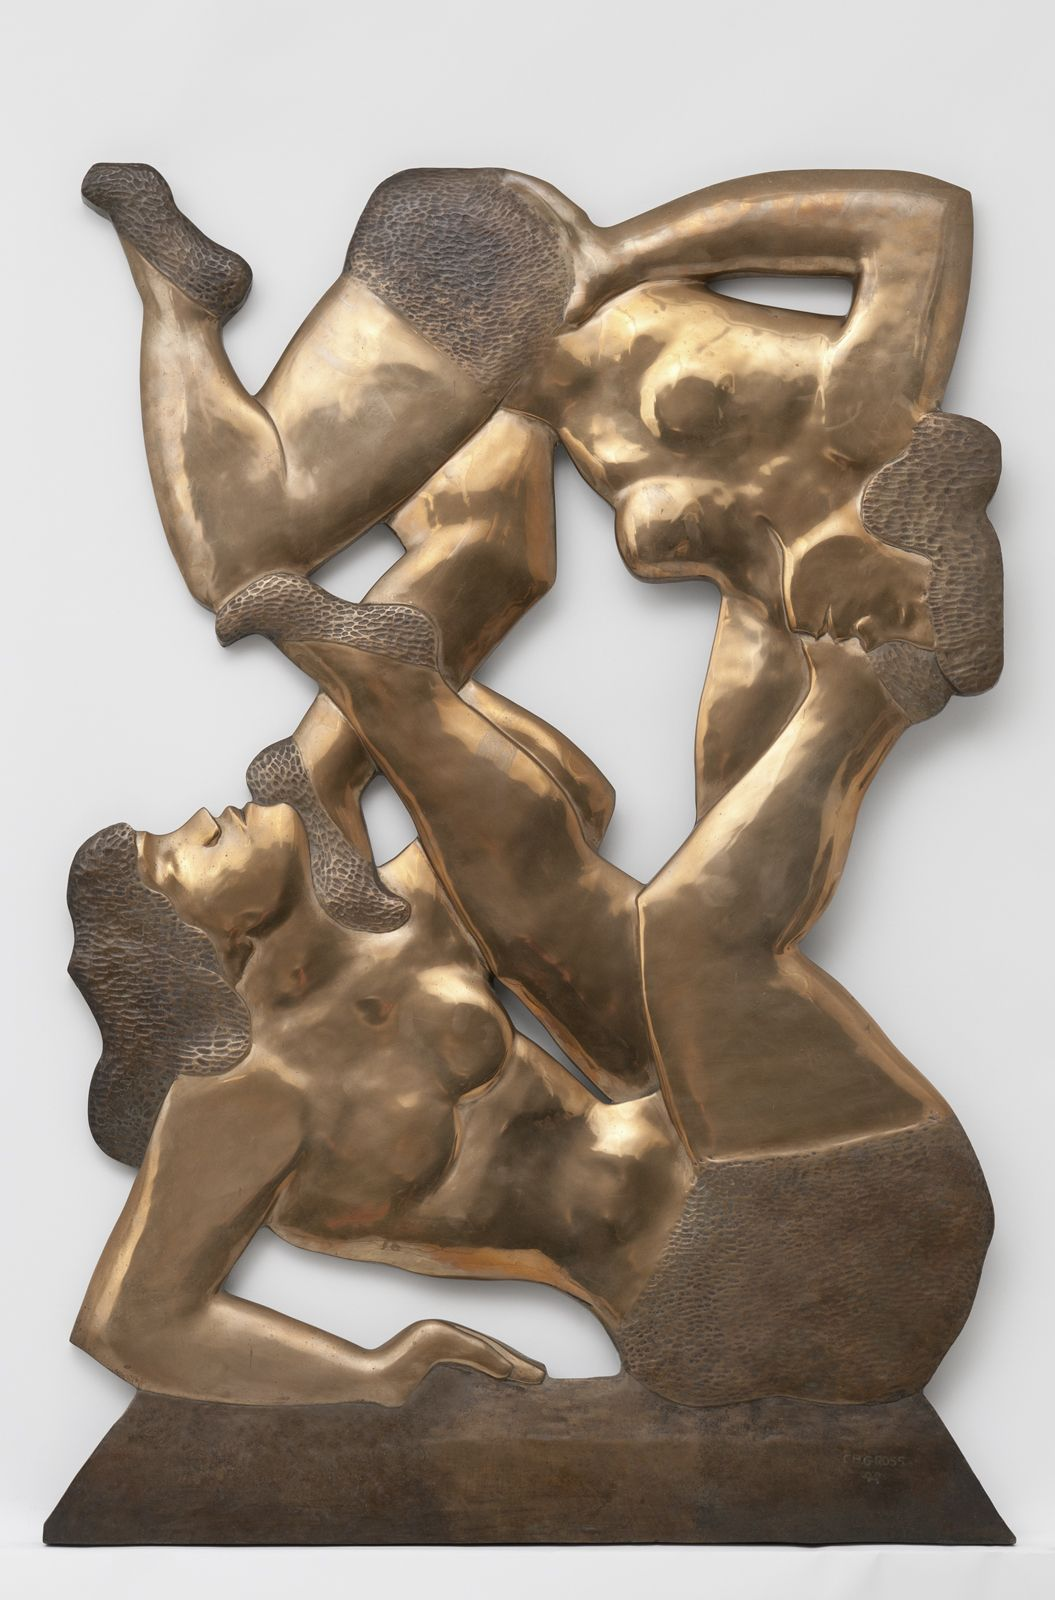 Chaim Gross, Acrobatic Performers, 1932, cast in 1985, bronze, 41 7/8 h x 28 5/8 w x 1 d inches, edition of 3